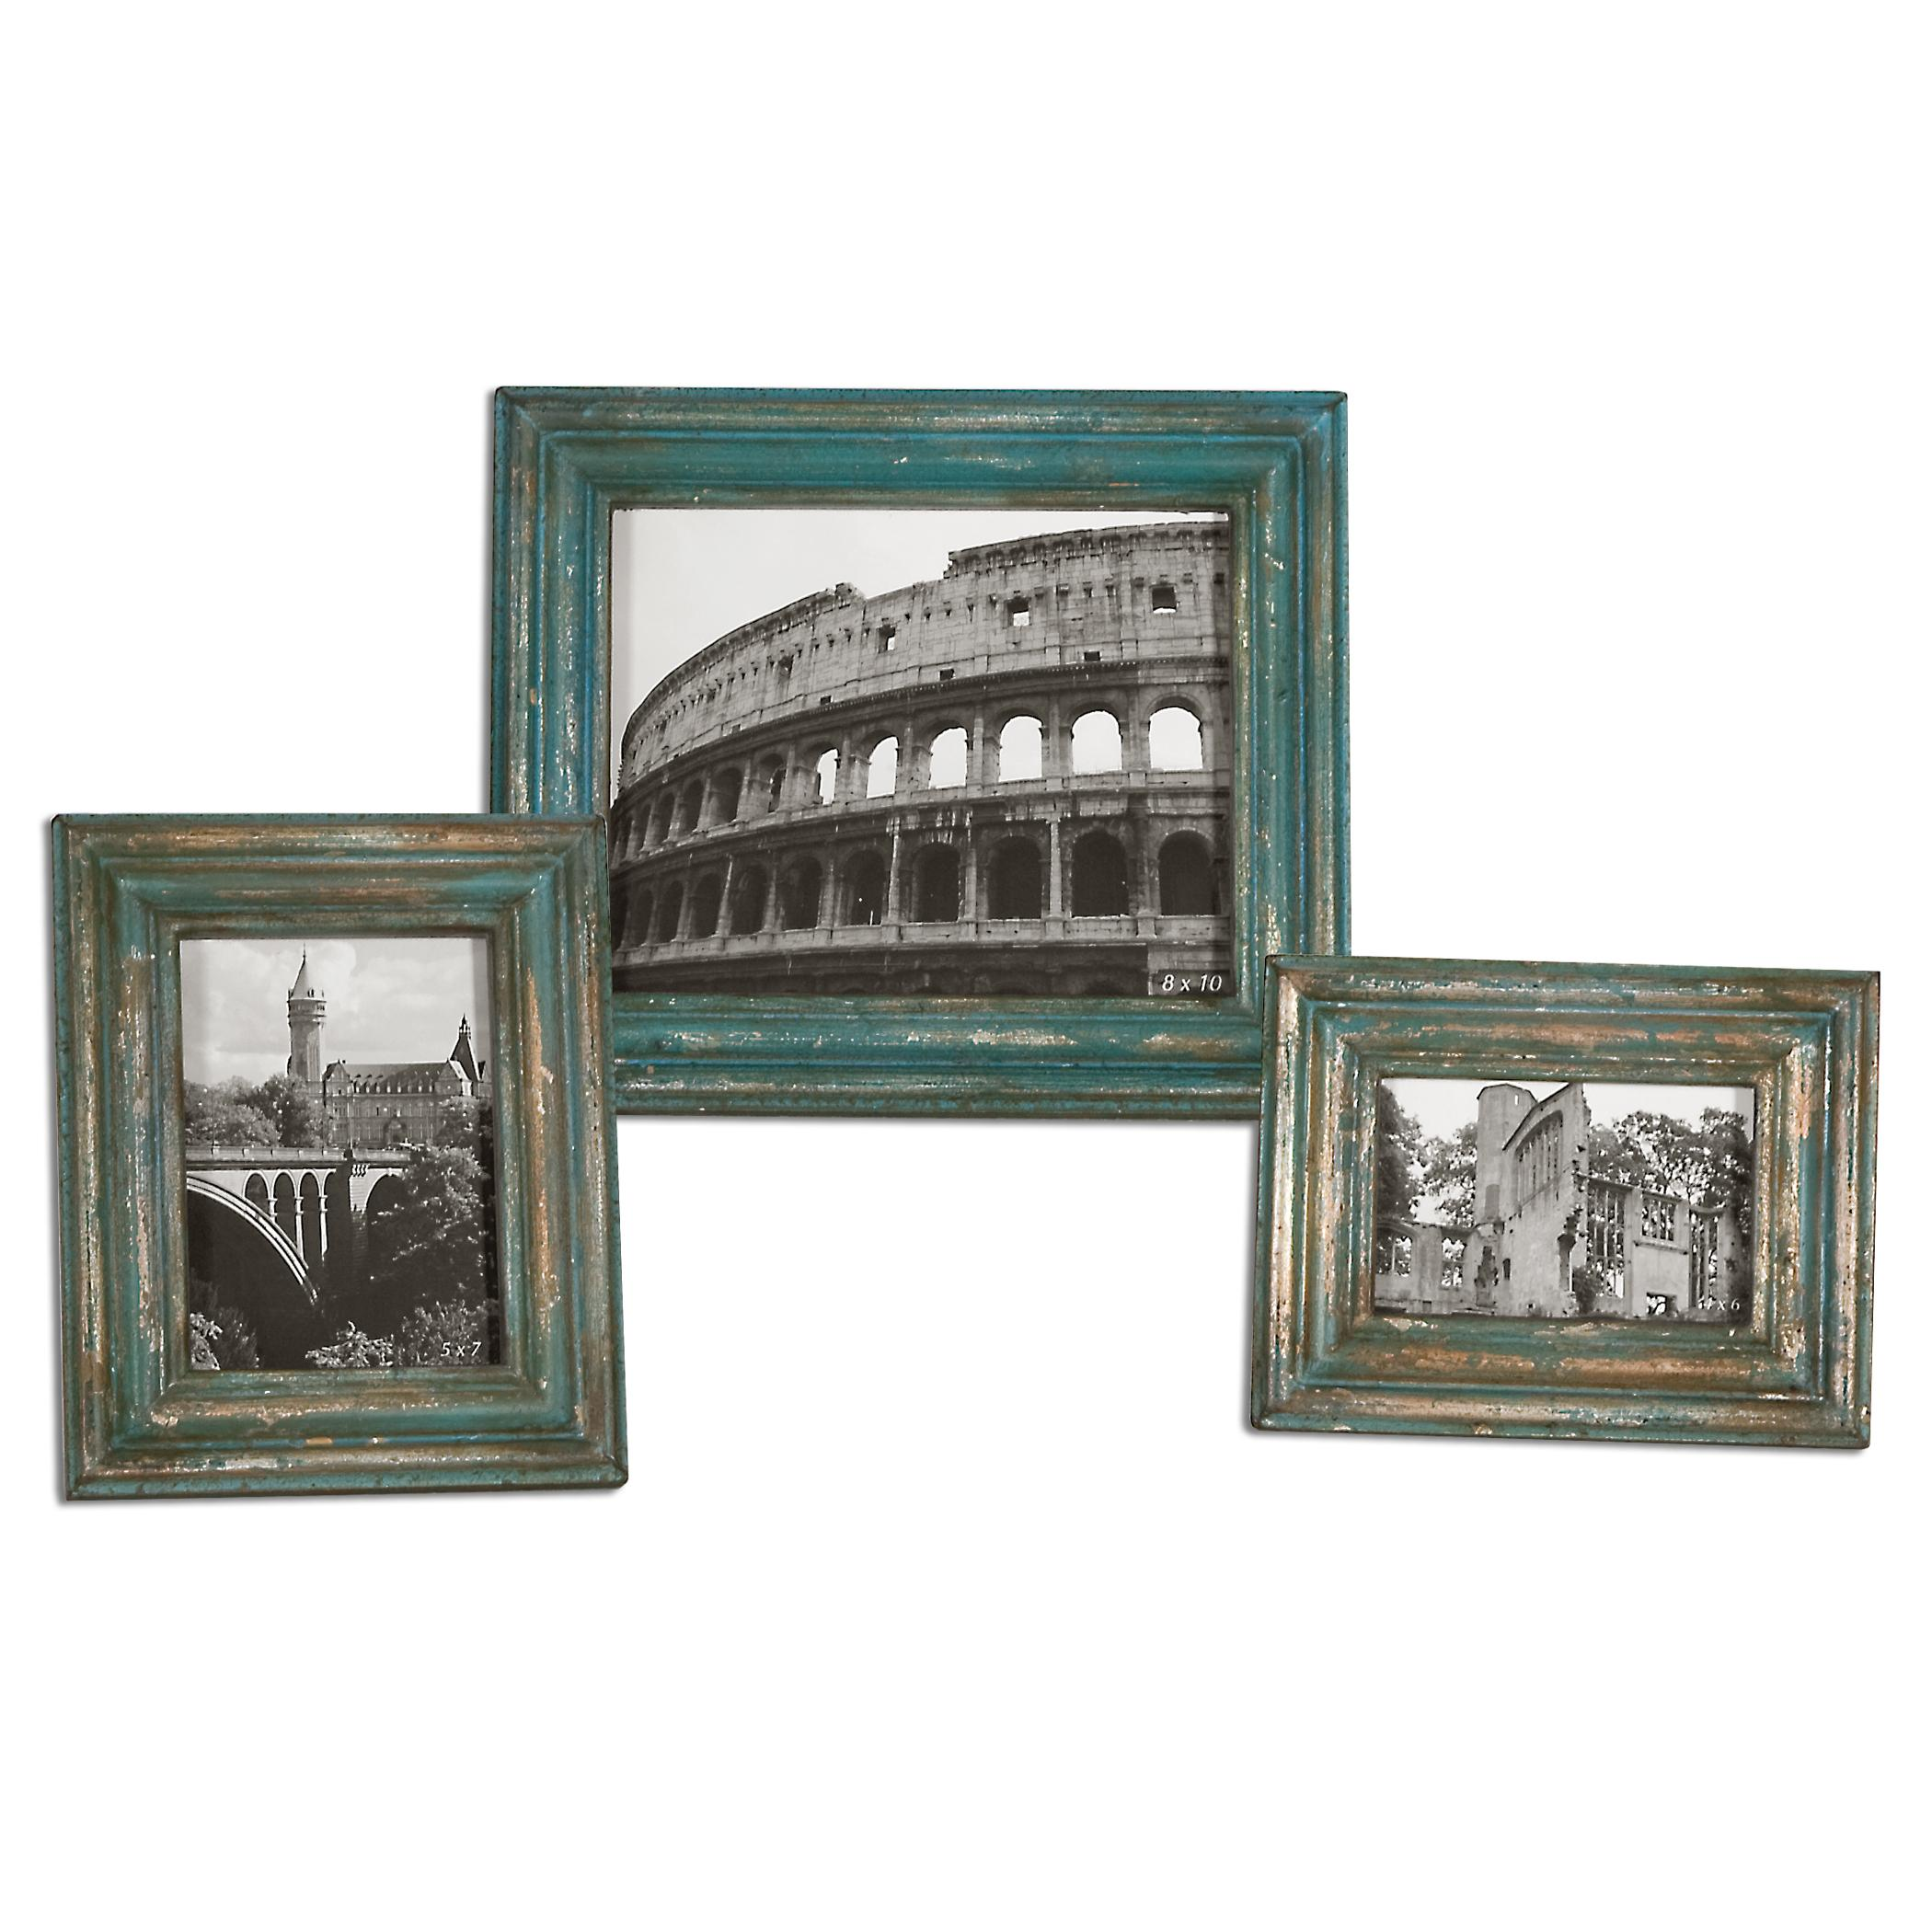 Uttermost Accessories Marlais Bronze Photo Frames, Set of  3 - Item Number: 18561